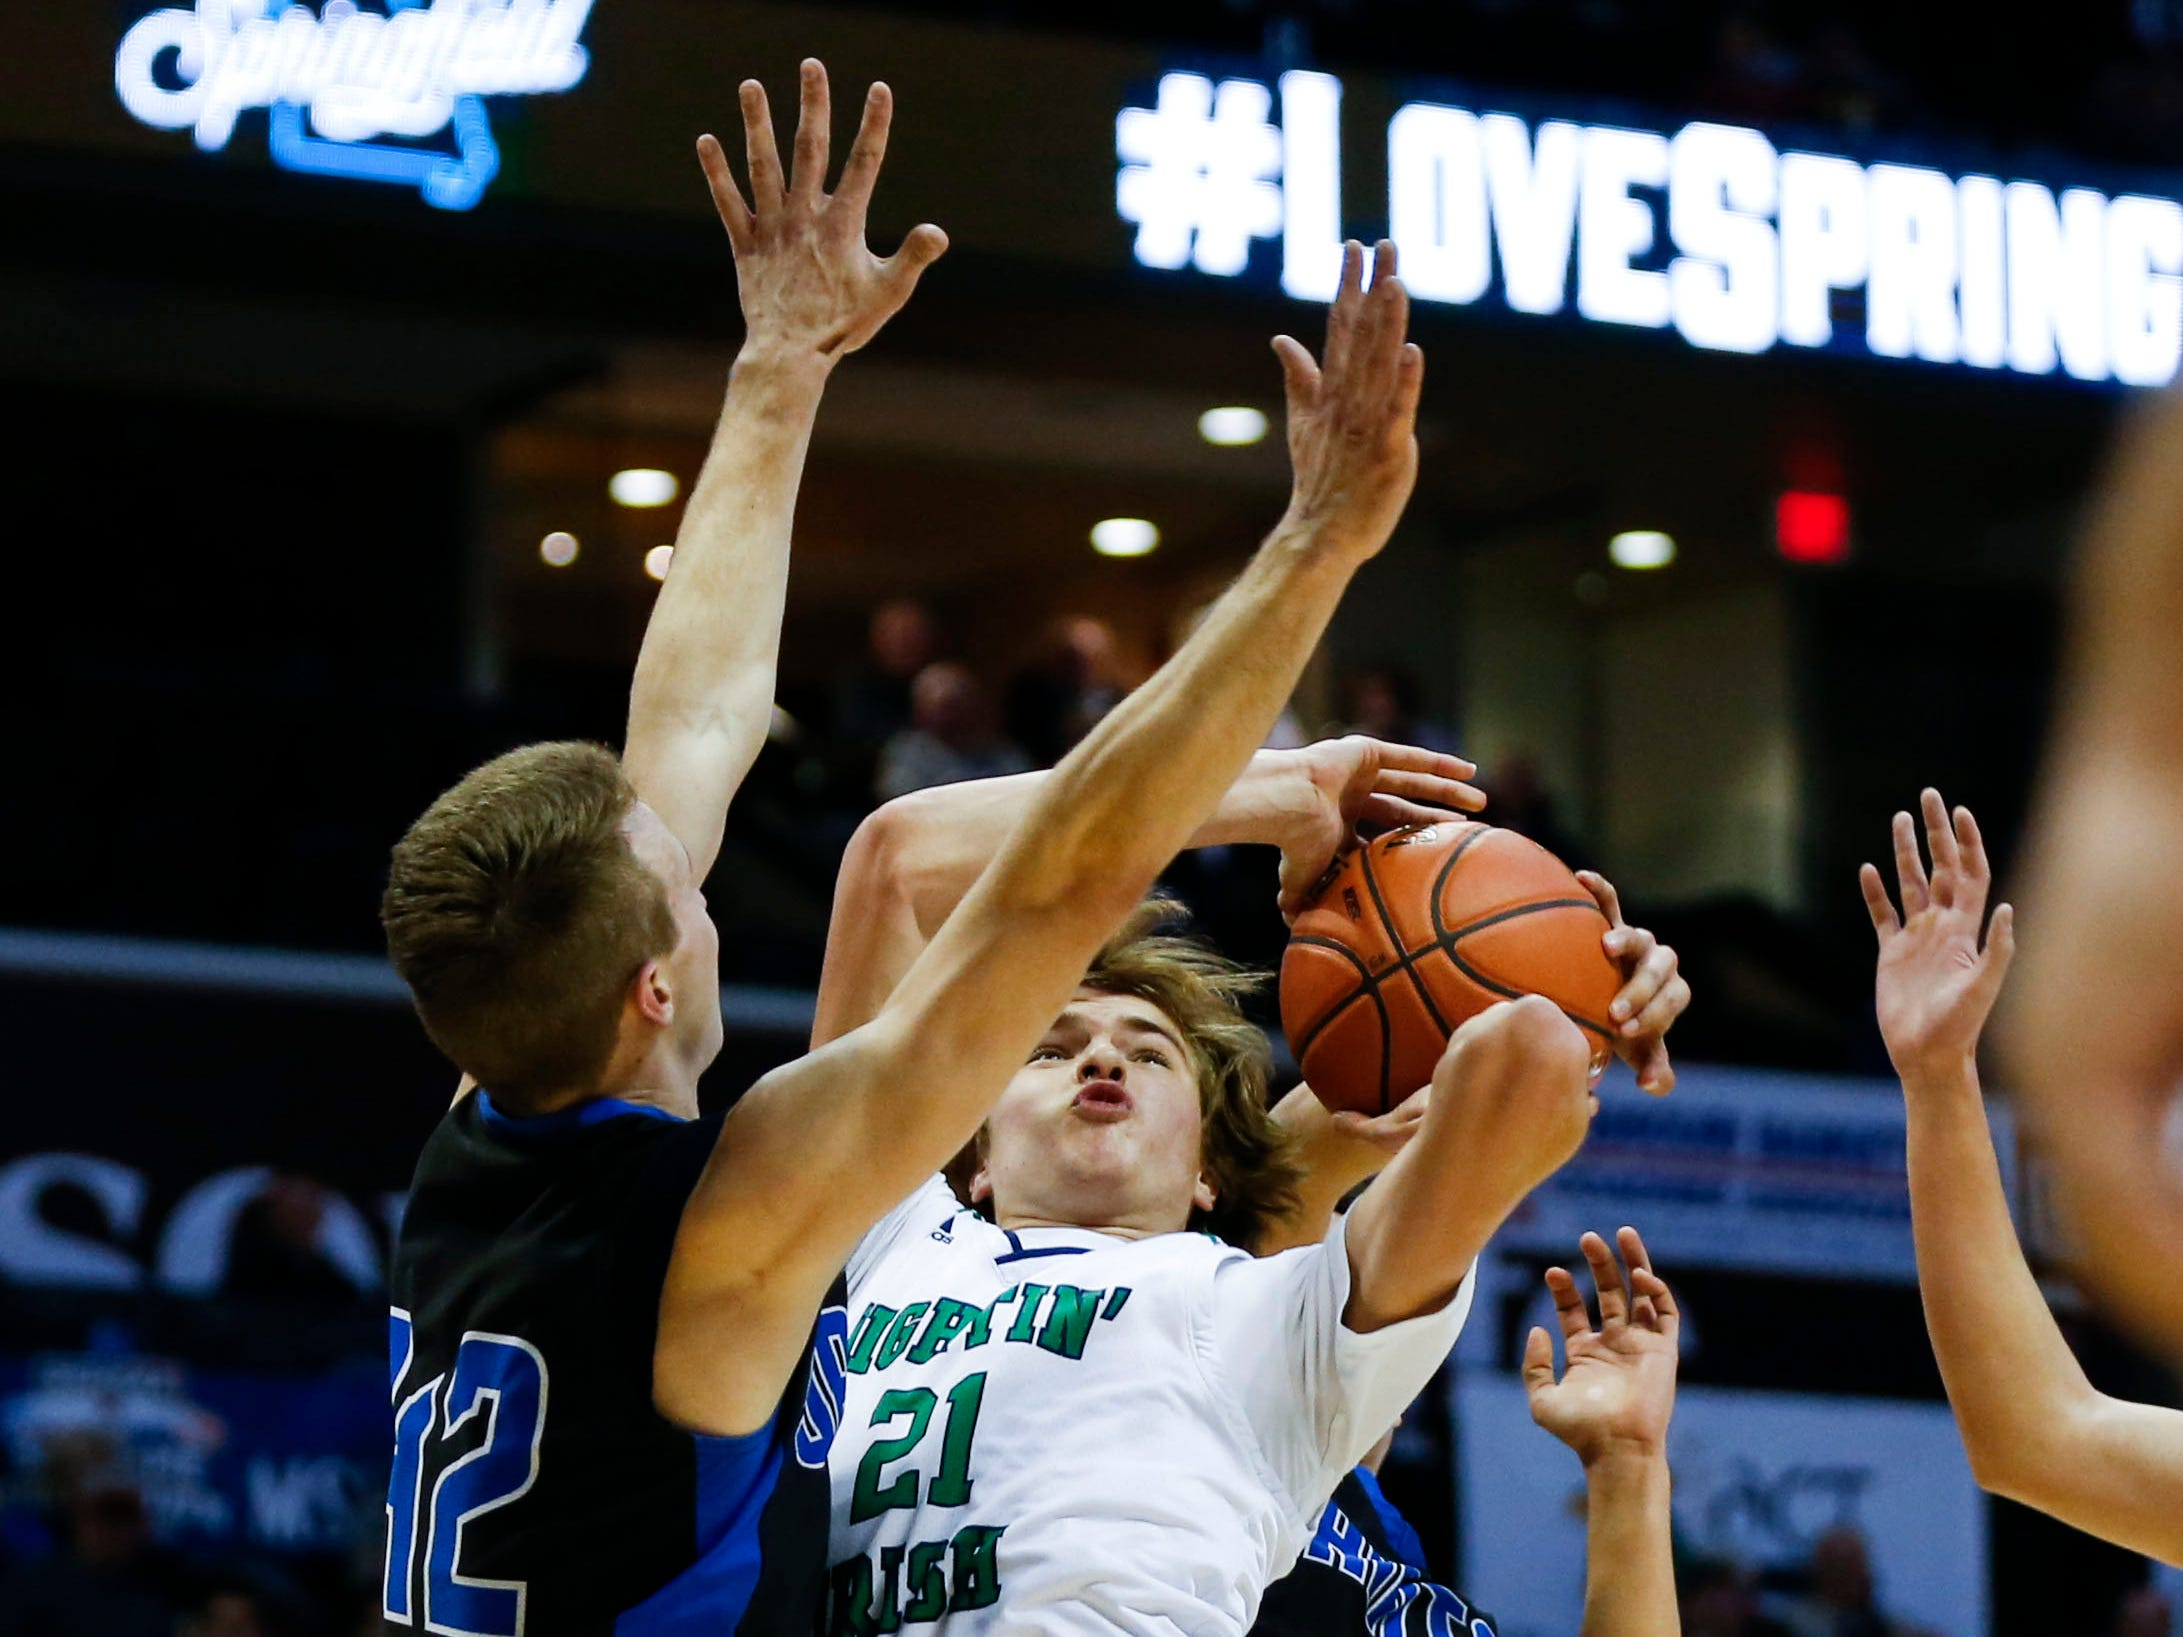 Springfield Catholic's Charlie O'Reilly puts up a field goal over St. Paul Lutheran's Elijah Muehler in the semifinal round of Class 3 state basketball at JQH Arena on Thursday, March 7, 2019.